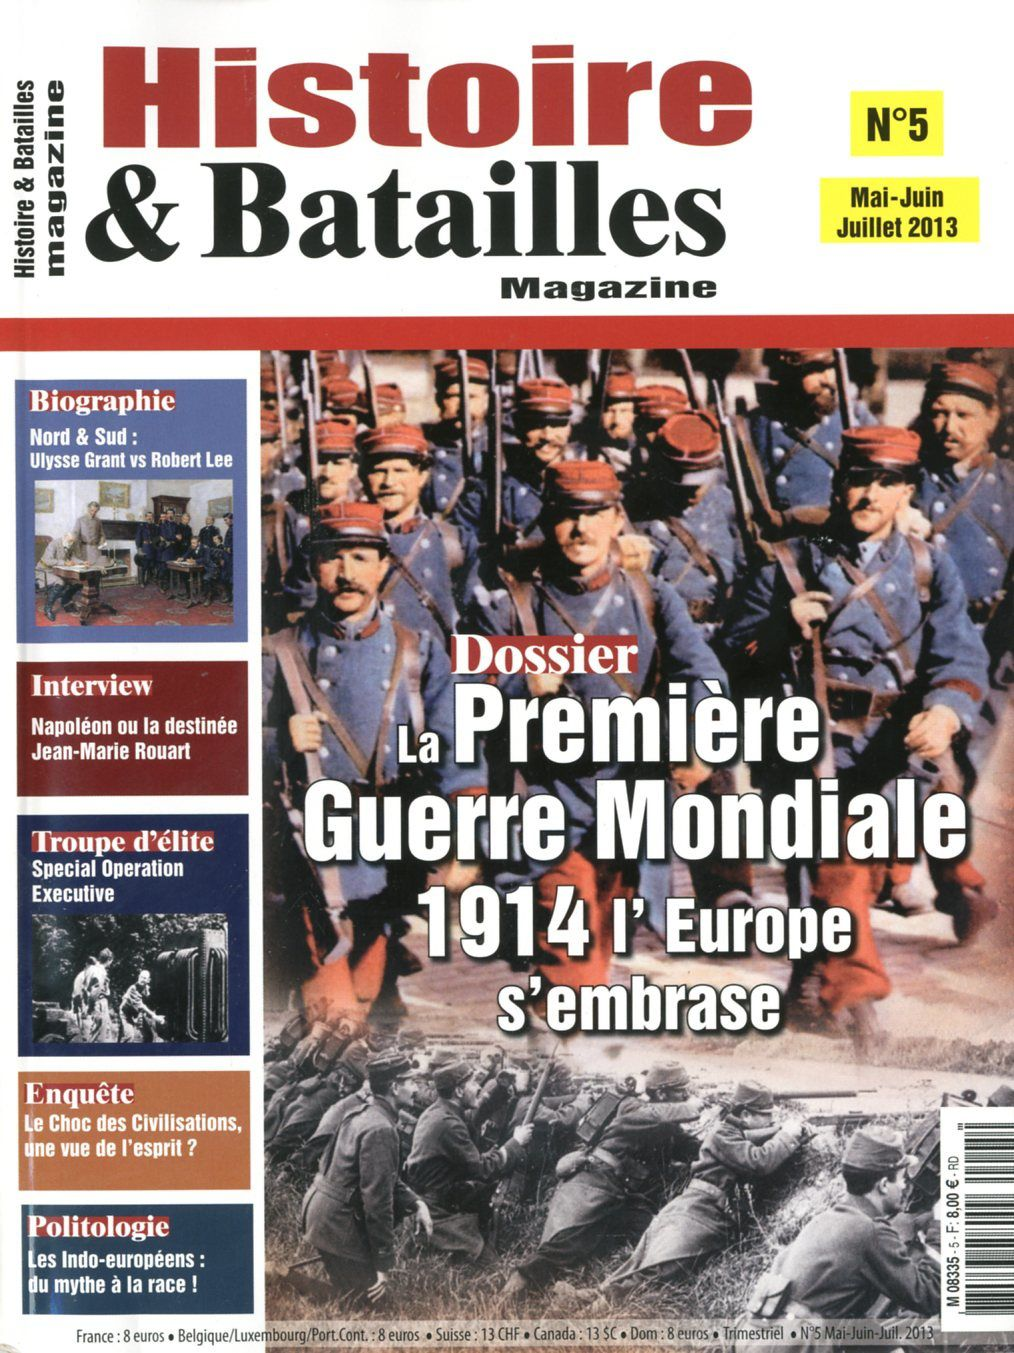 1914 : l'embrasement de l'Europe